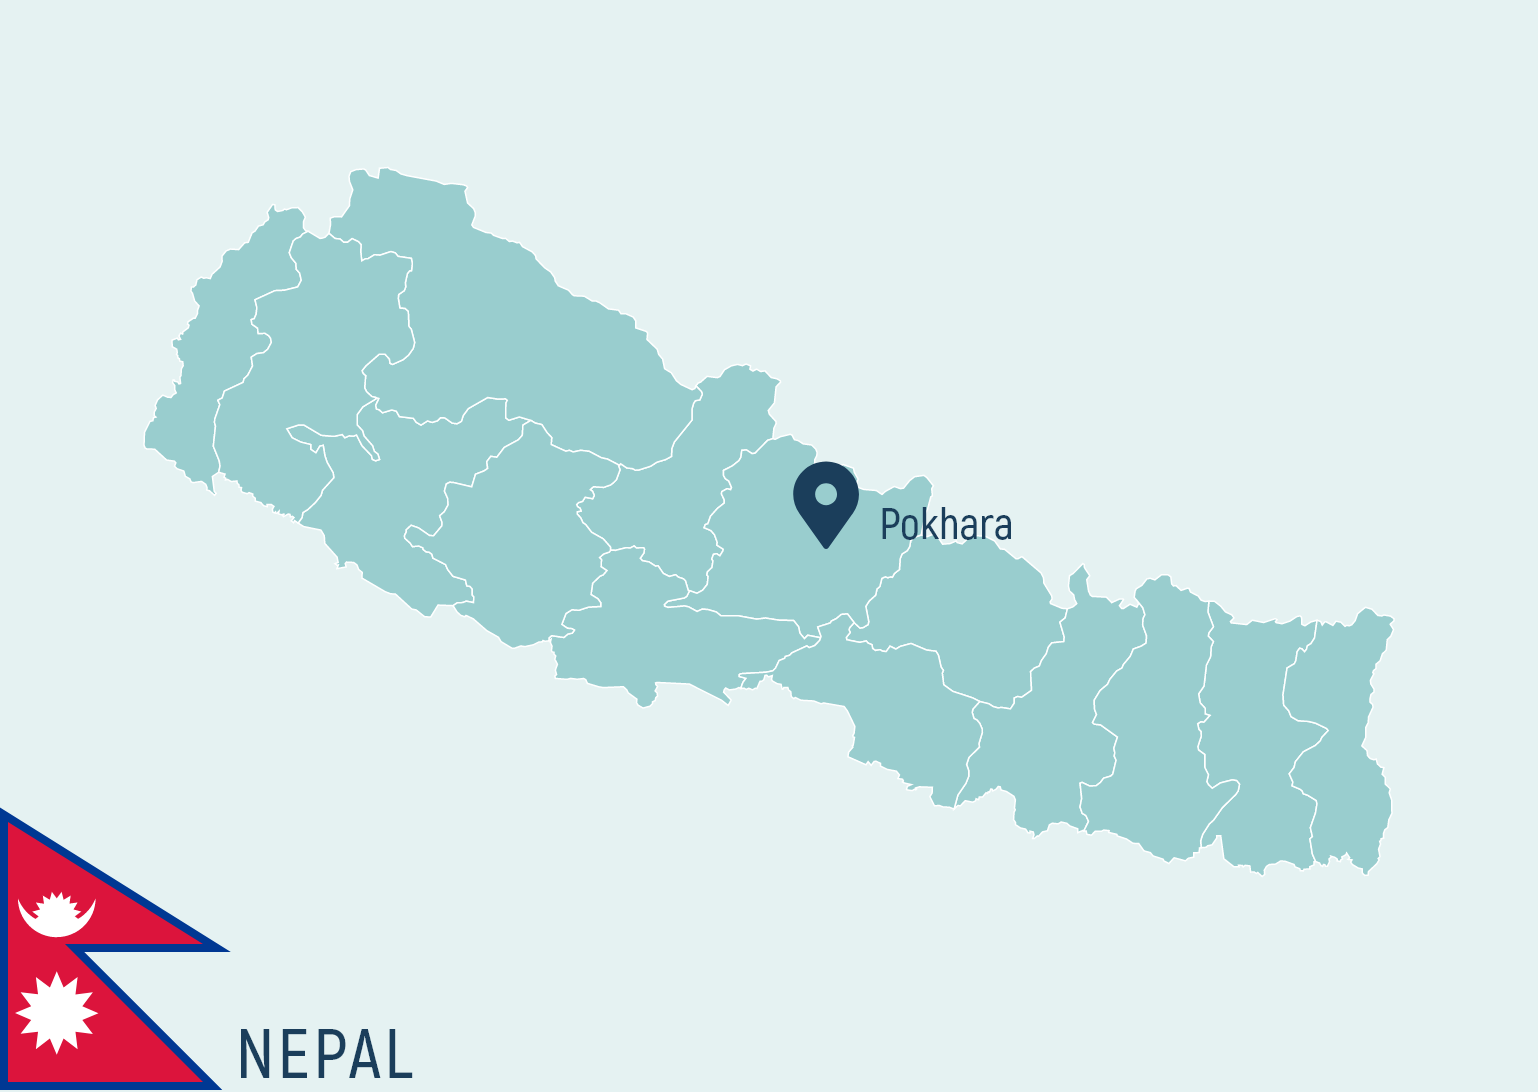 The Pokhara Project Location